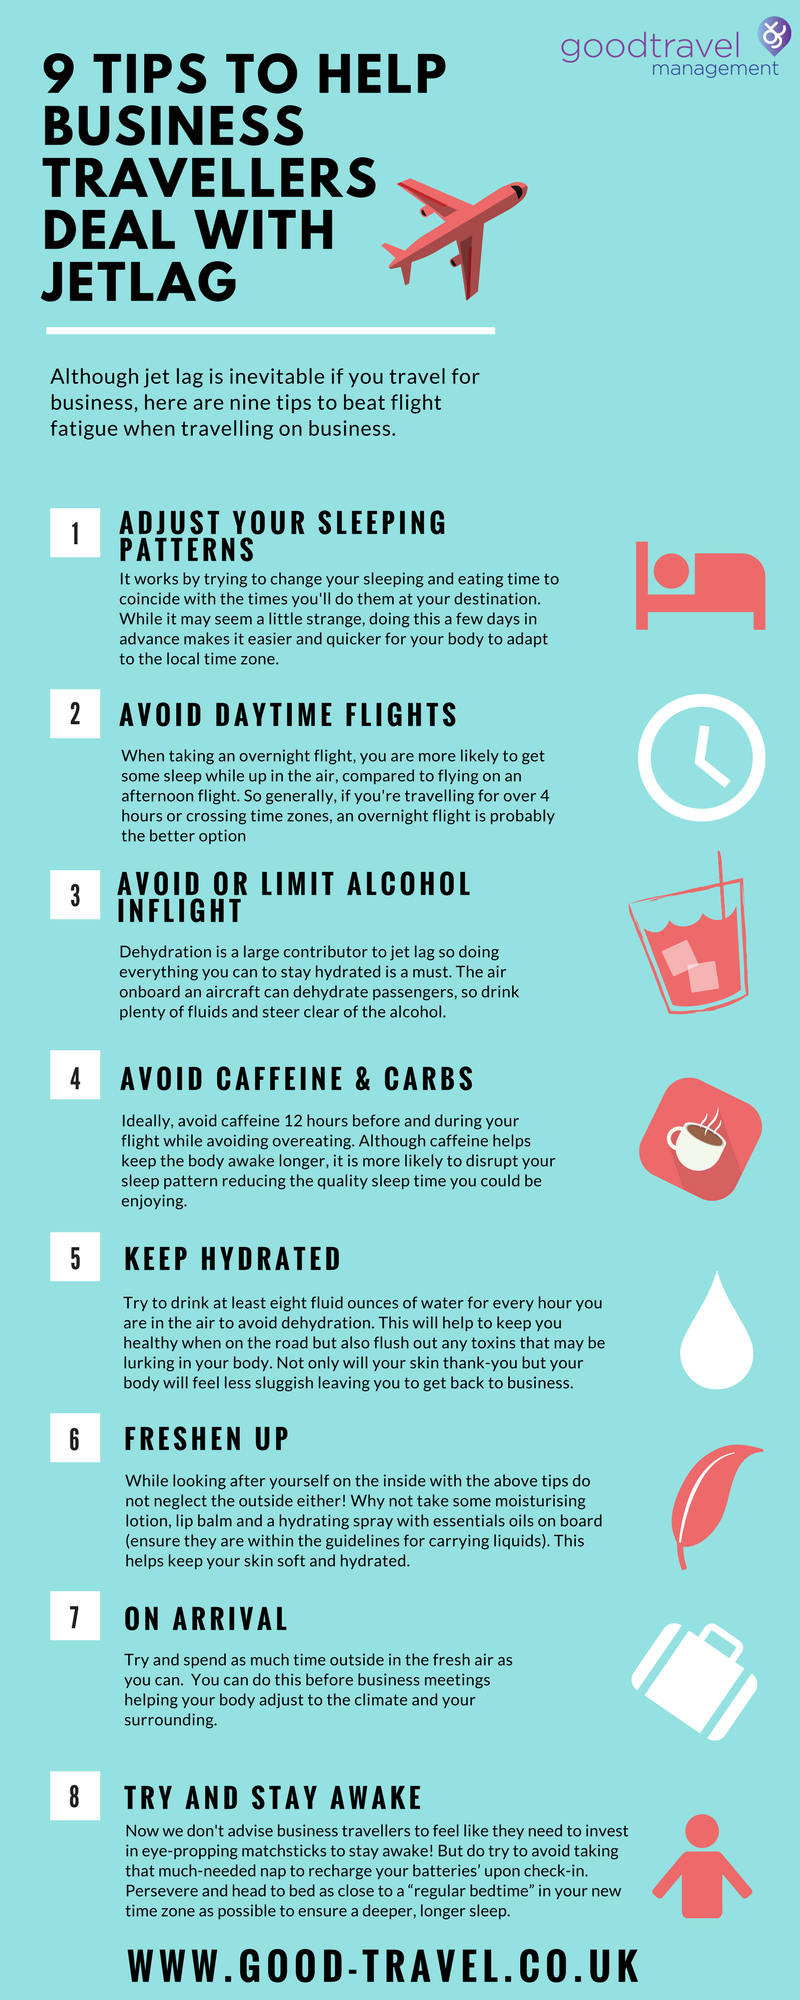 9 tips to help business travellers deal with Jetlag (1)